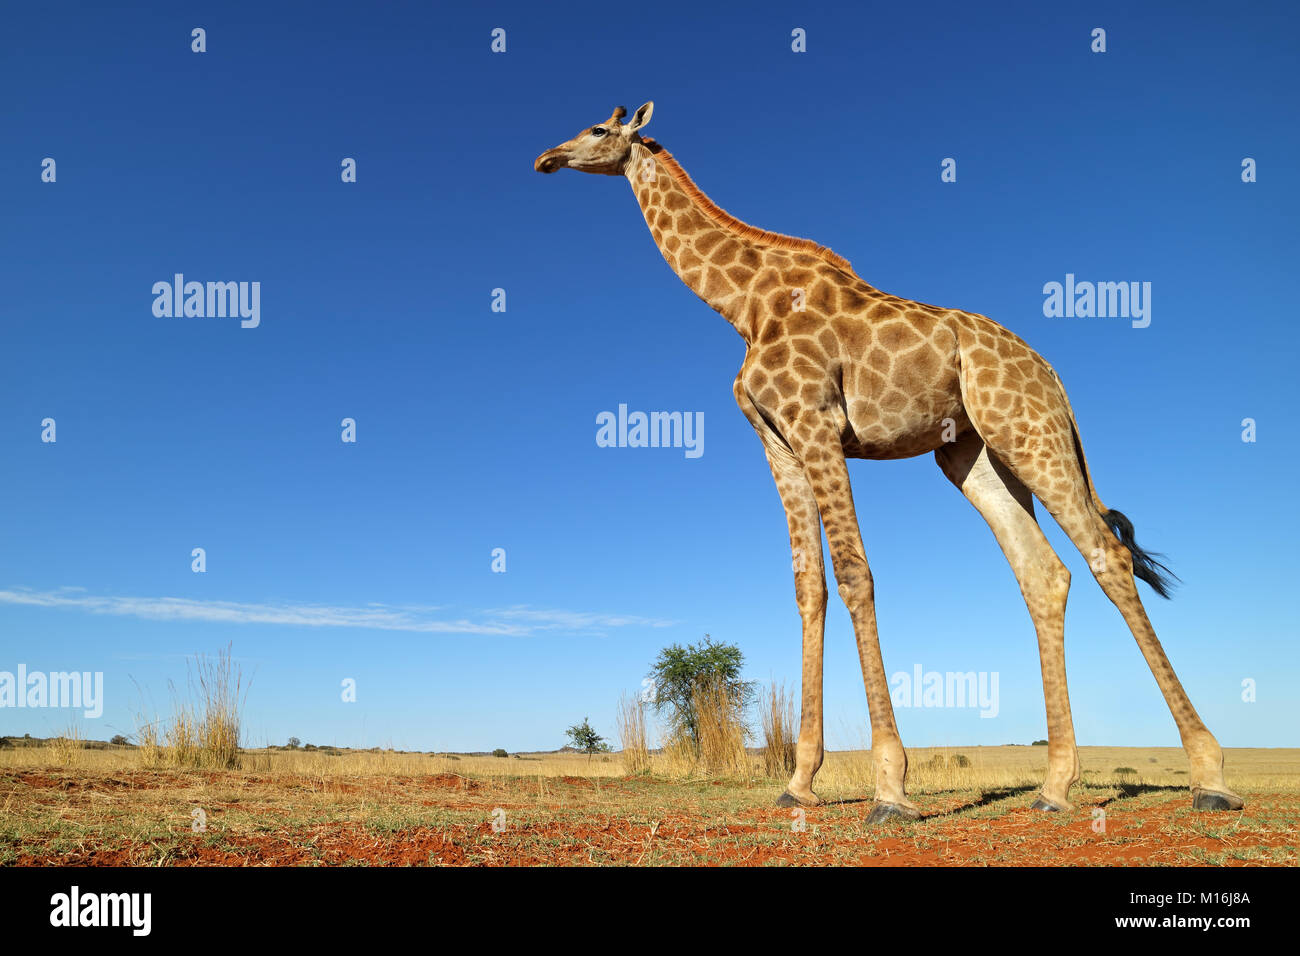 Low-angle view of a giraffe (Giraffa camelopardalis) against a blue sky, South Africa - Stock Image